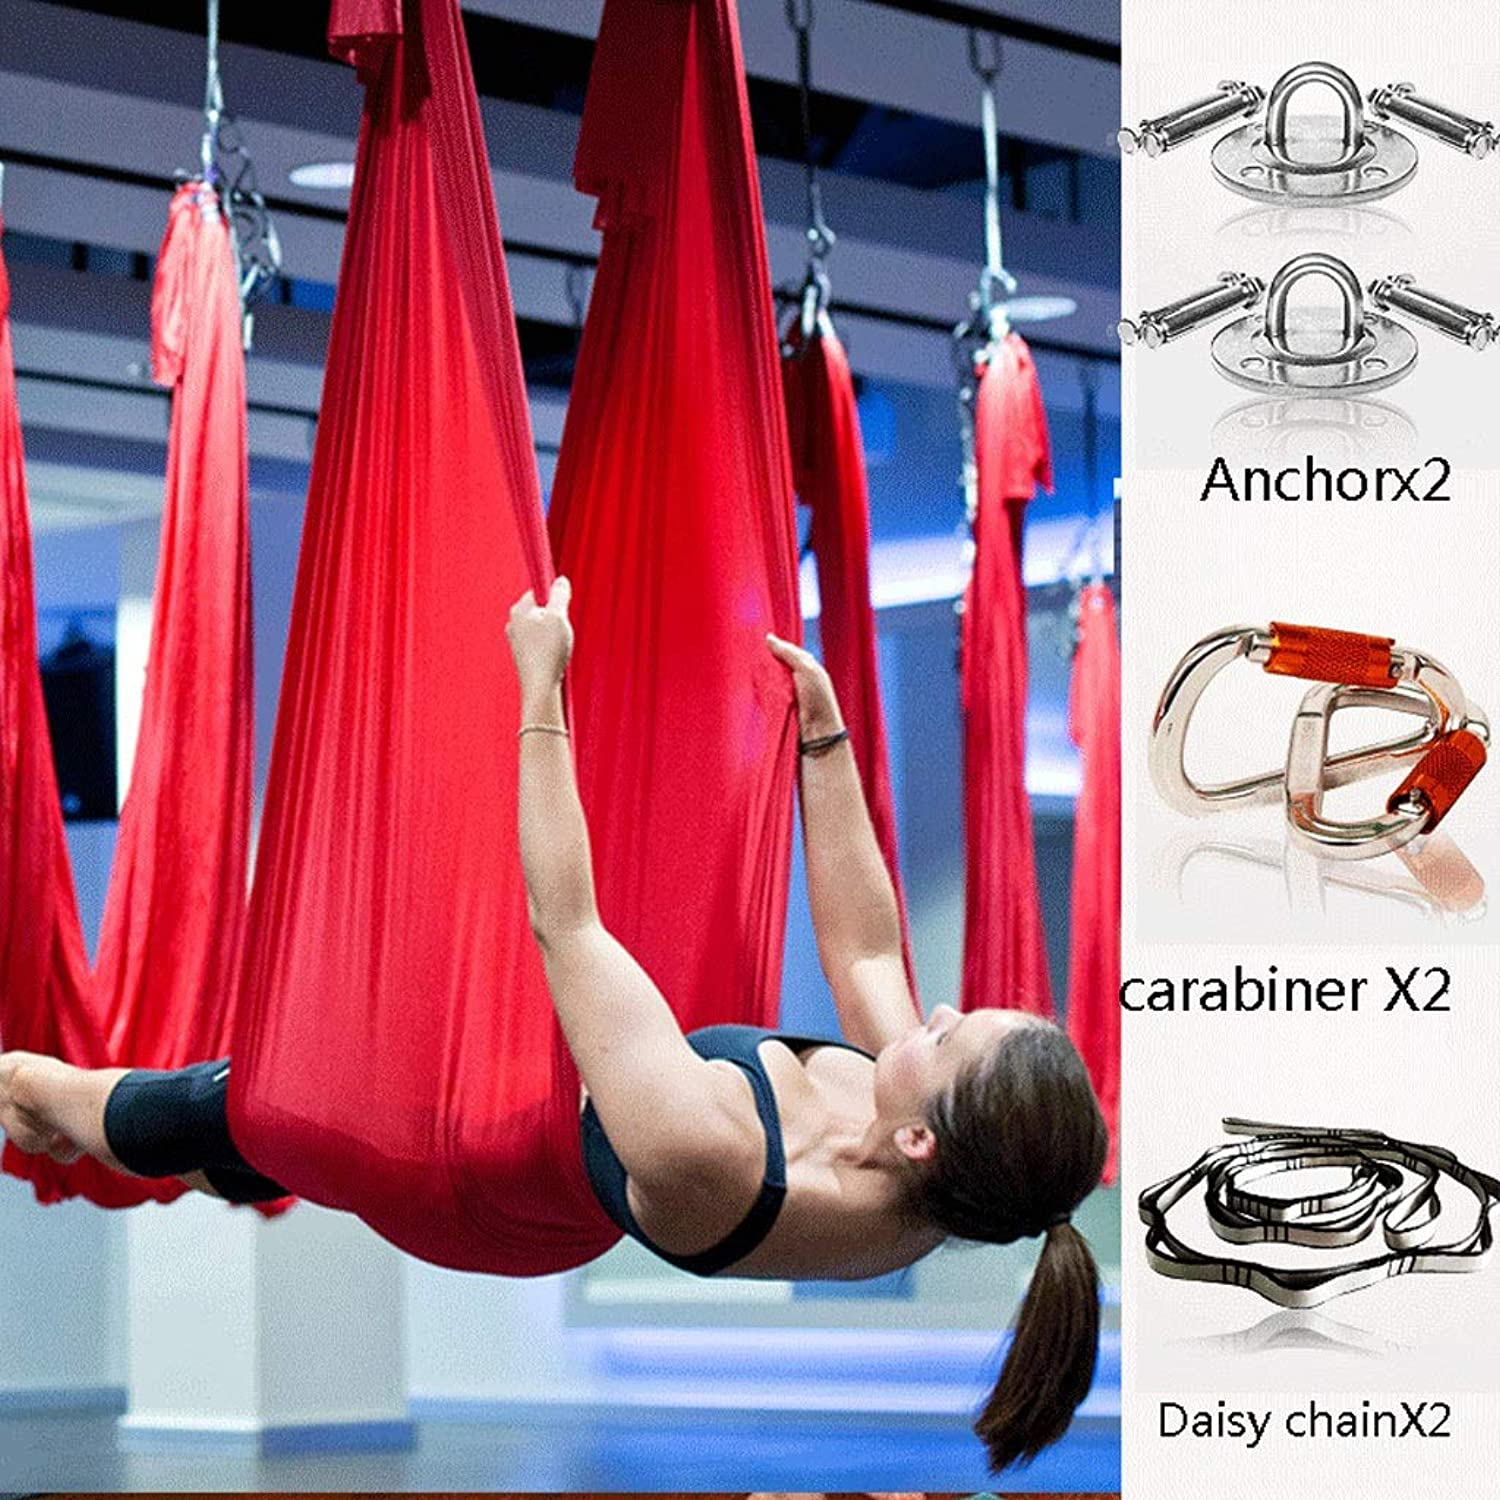 Aerial Antigravity Yoga Hammock 5.5 Yards, Aerial Pilates 100% Nylon Fabric Yoga Swing Set Include Carabiner, Daisy Chain, Inversion Tool, Inversion Exercises for Air Yoga (color   Red)